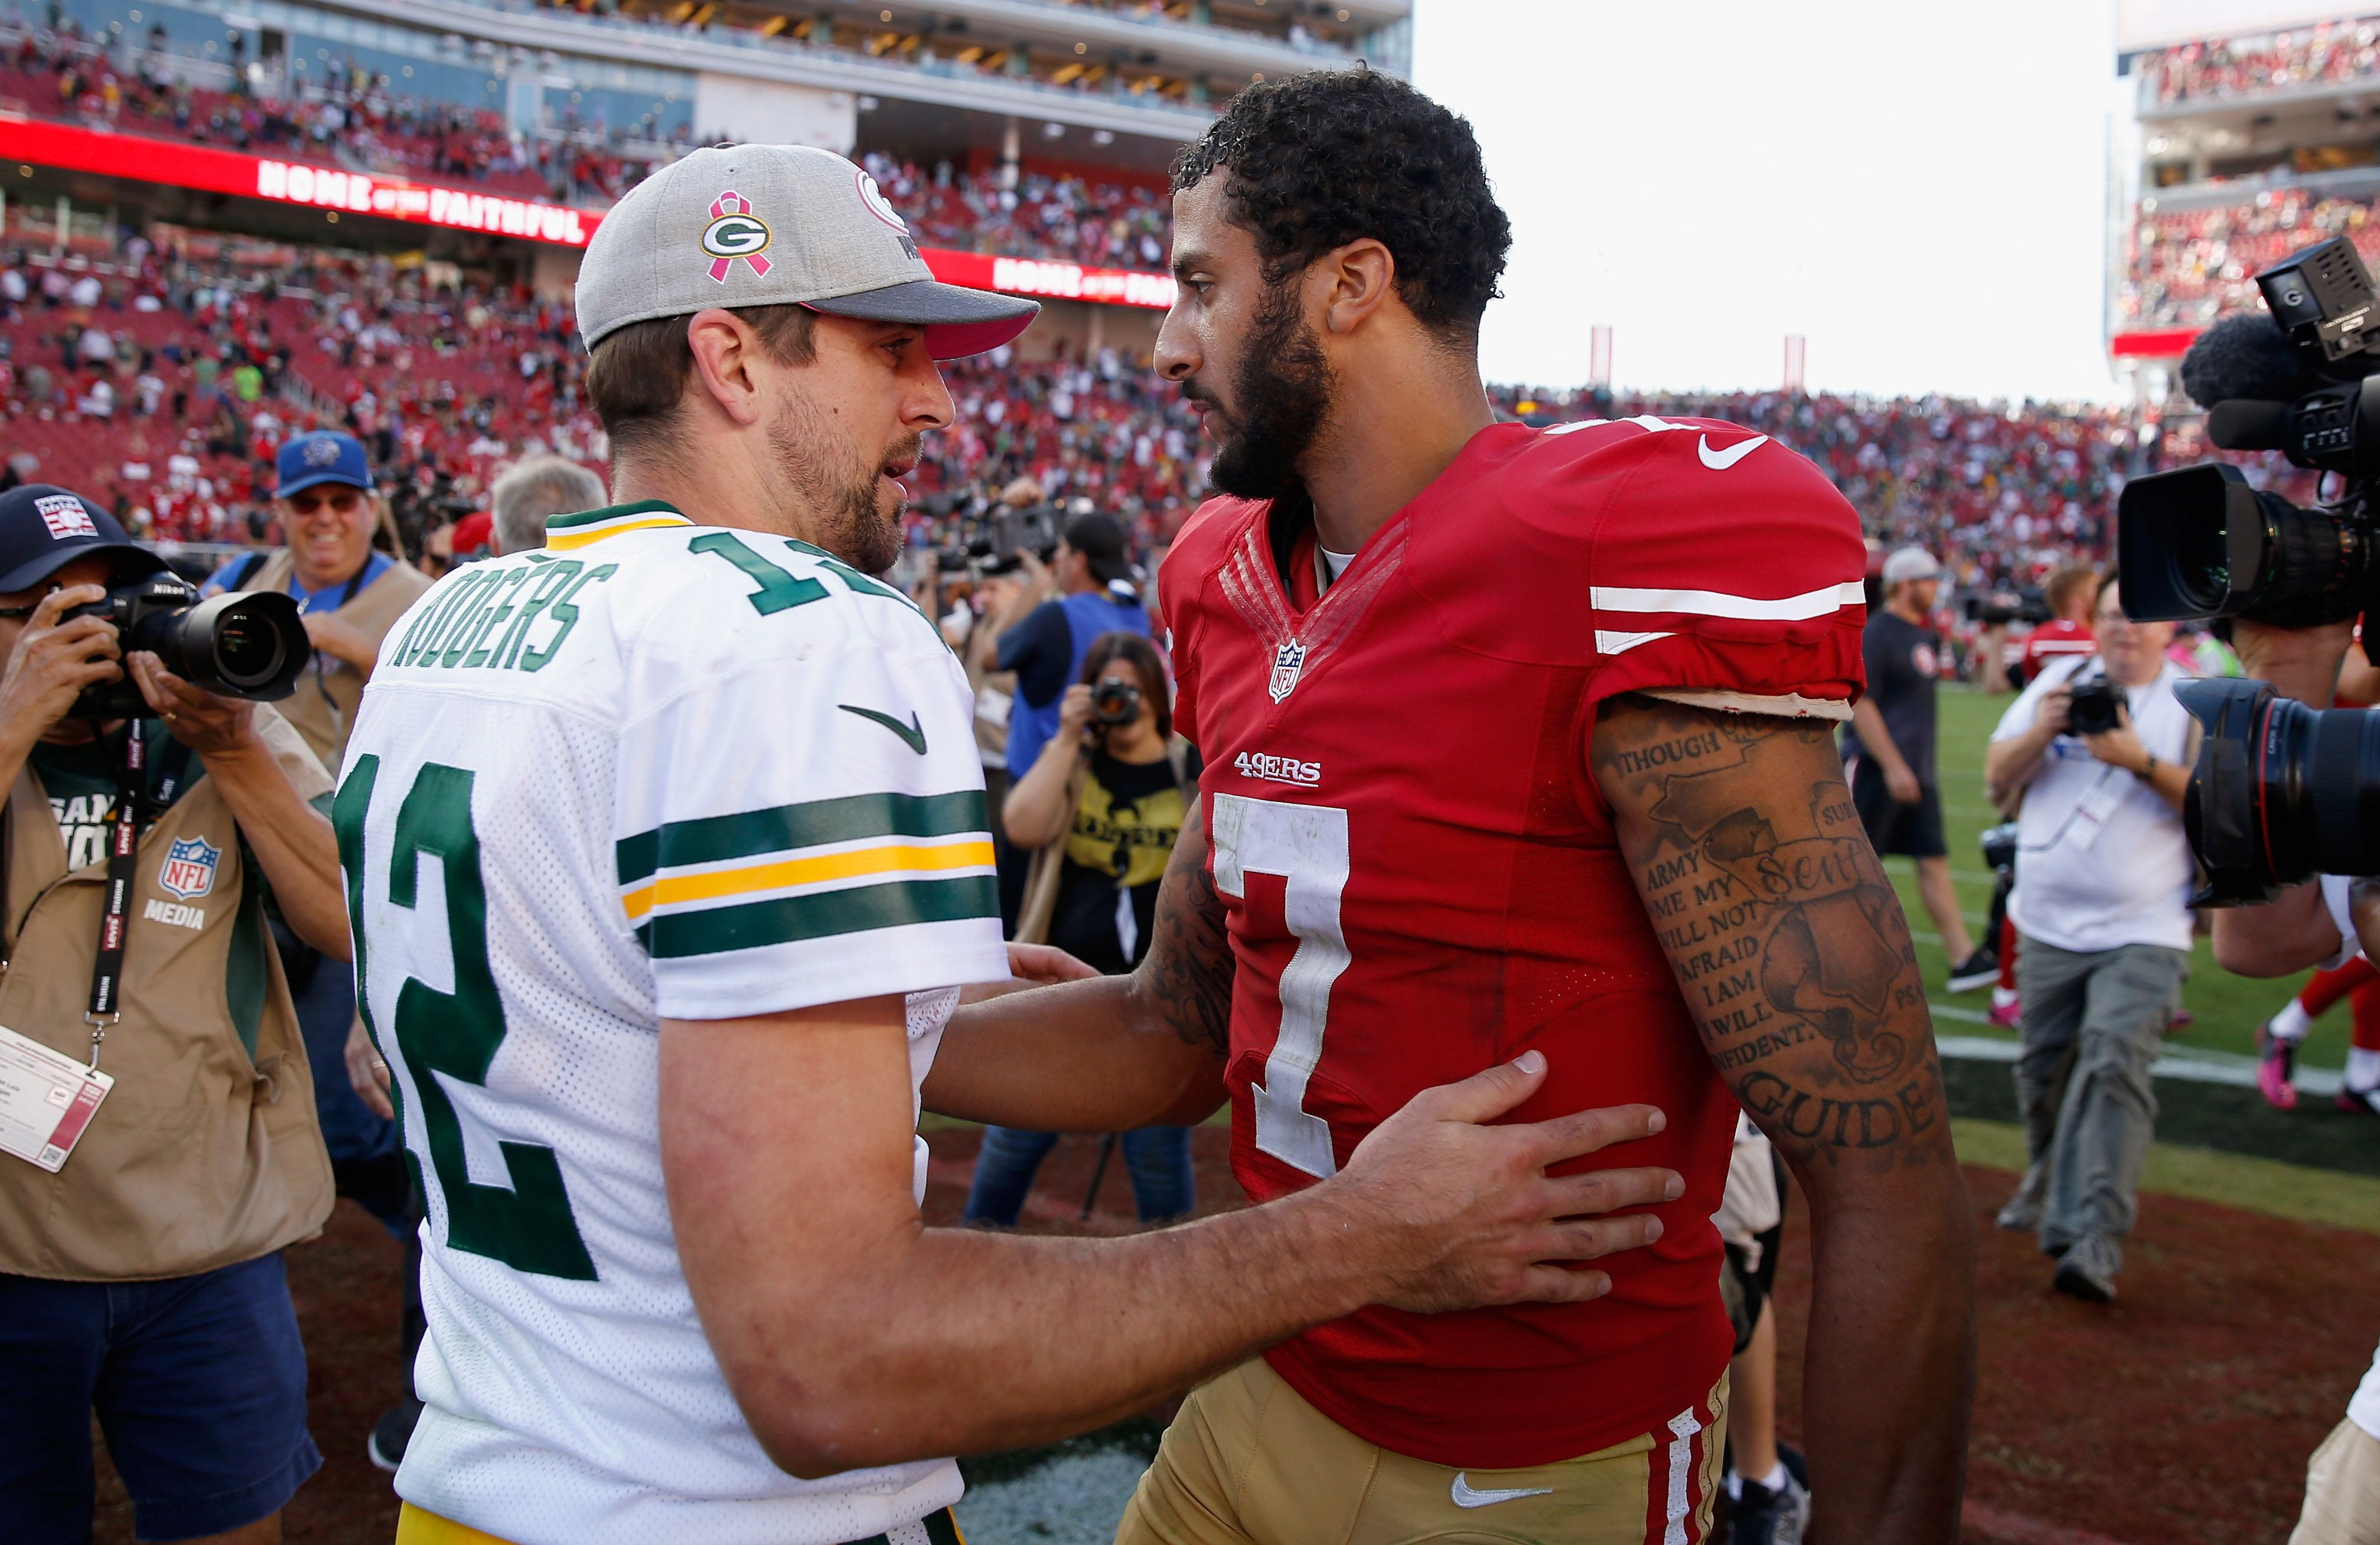 SANTA CLARA, CA - OCTOBER 04:  Colin Kaepernick #7 of the San Francisco 49ers talks with Aaron Rodgers #12 of the Green Bay Packers after their game at Levi's Stadium on October 4, 2015 in Santa Clara, California.  (Photo by Ezra Shaw/Getty Images)